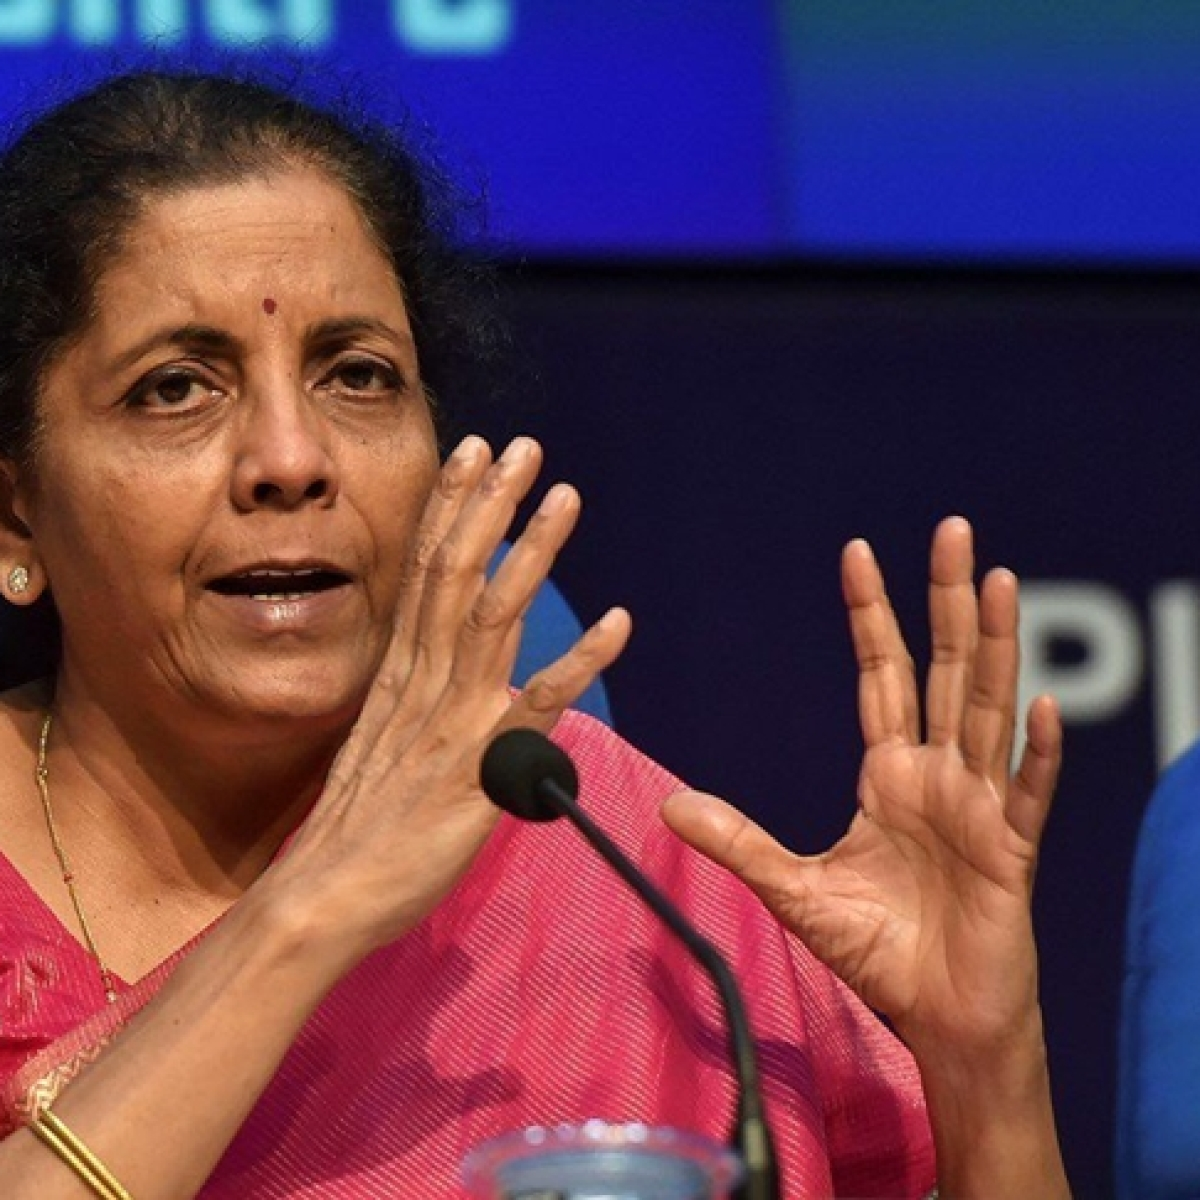 Rajan, Manmohan left stink of corruption: FM Nirmala Sitharaman